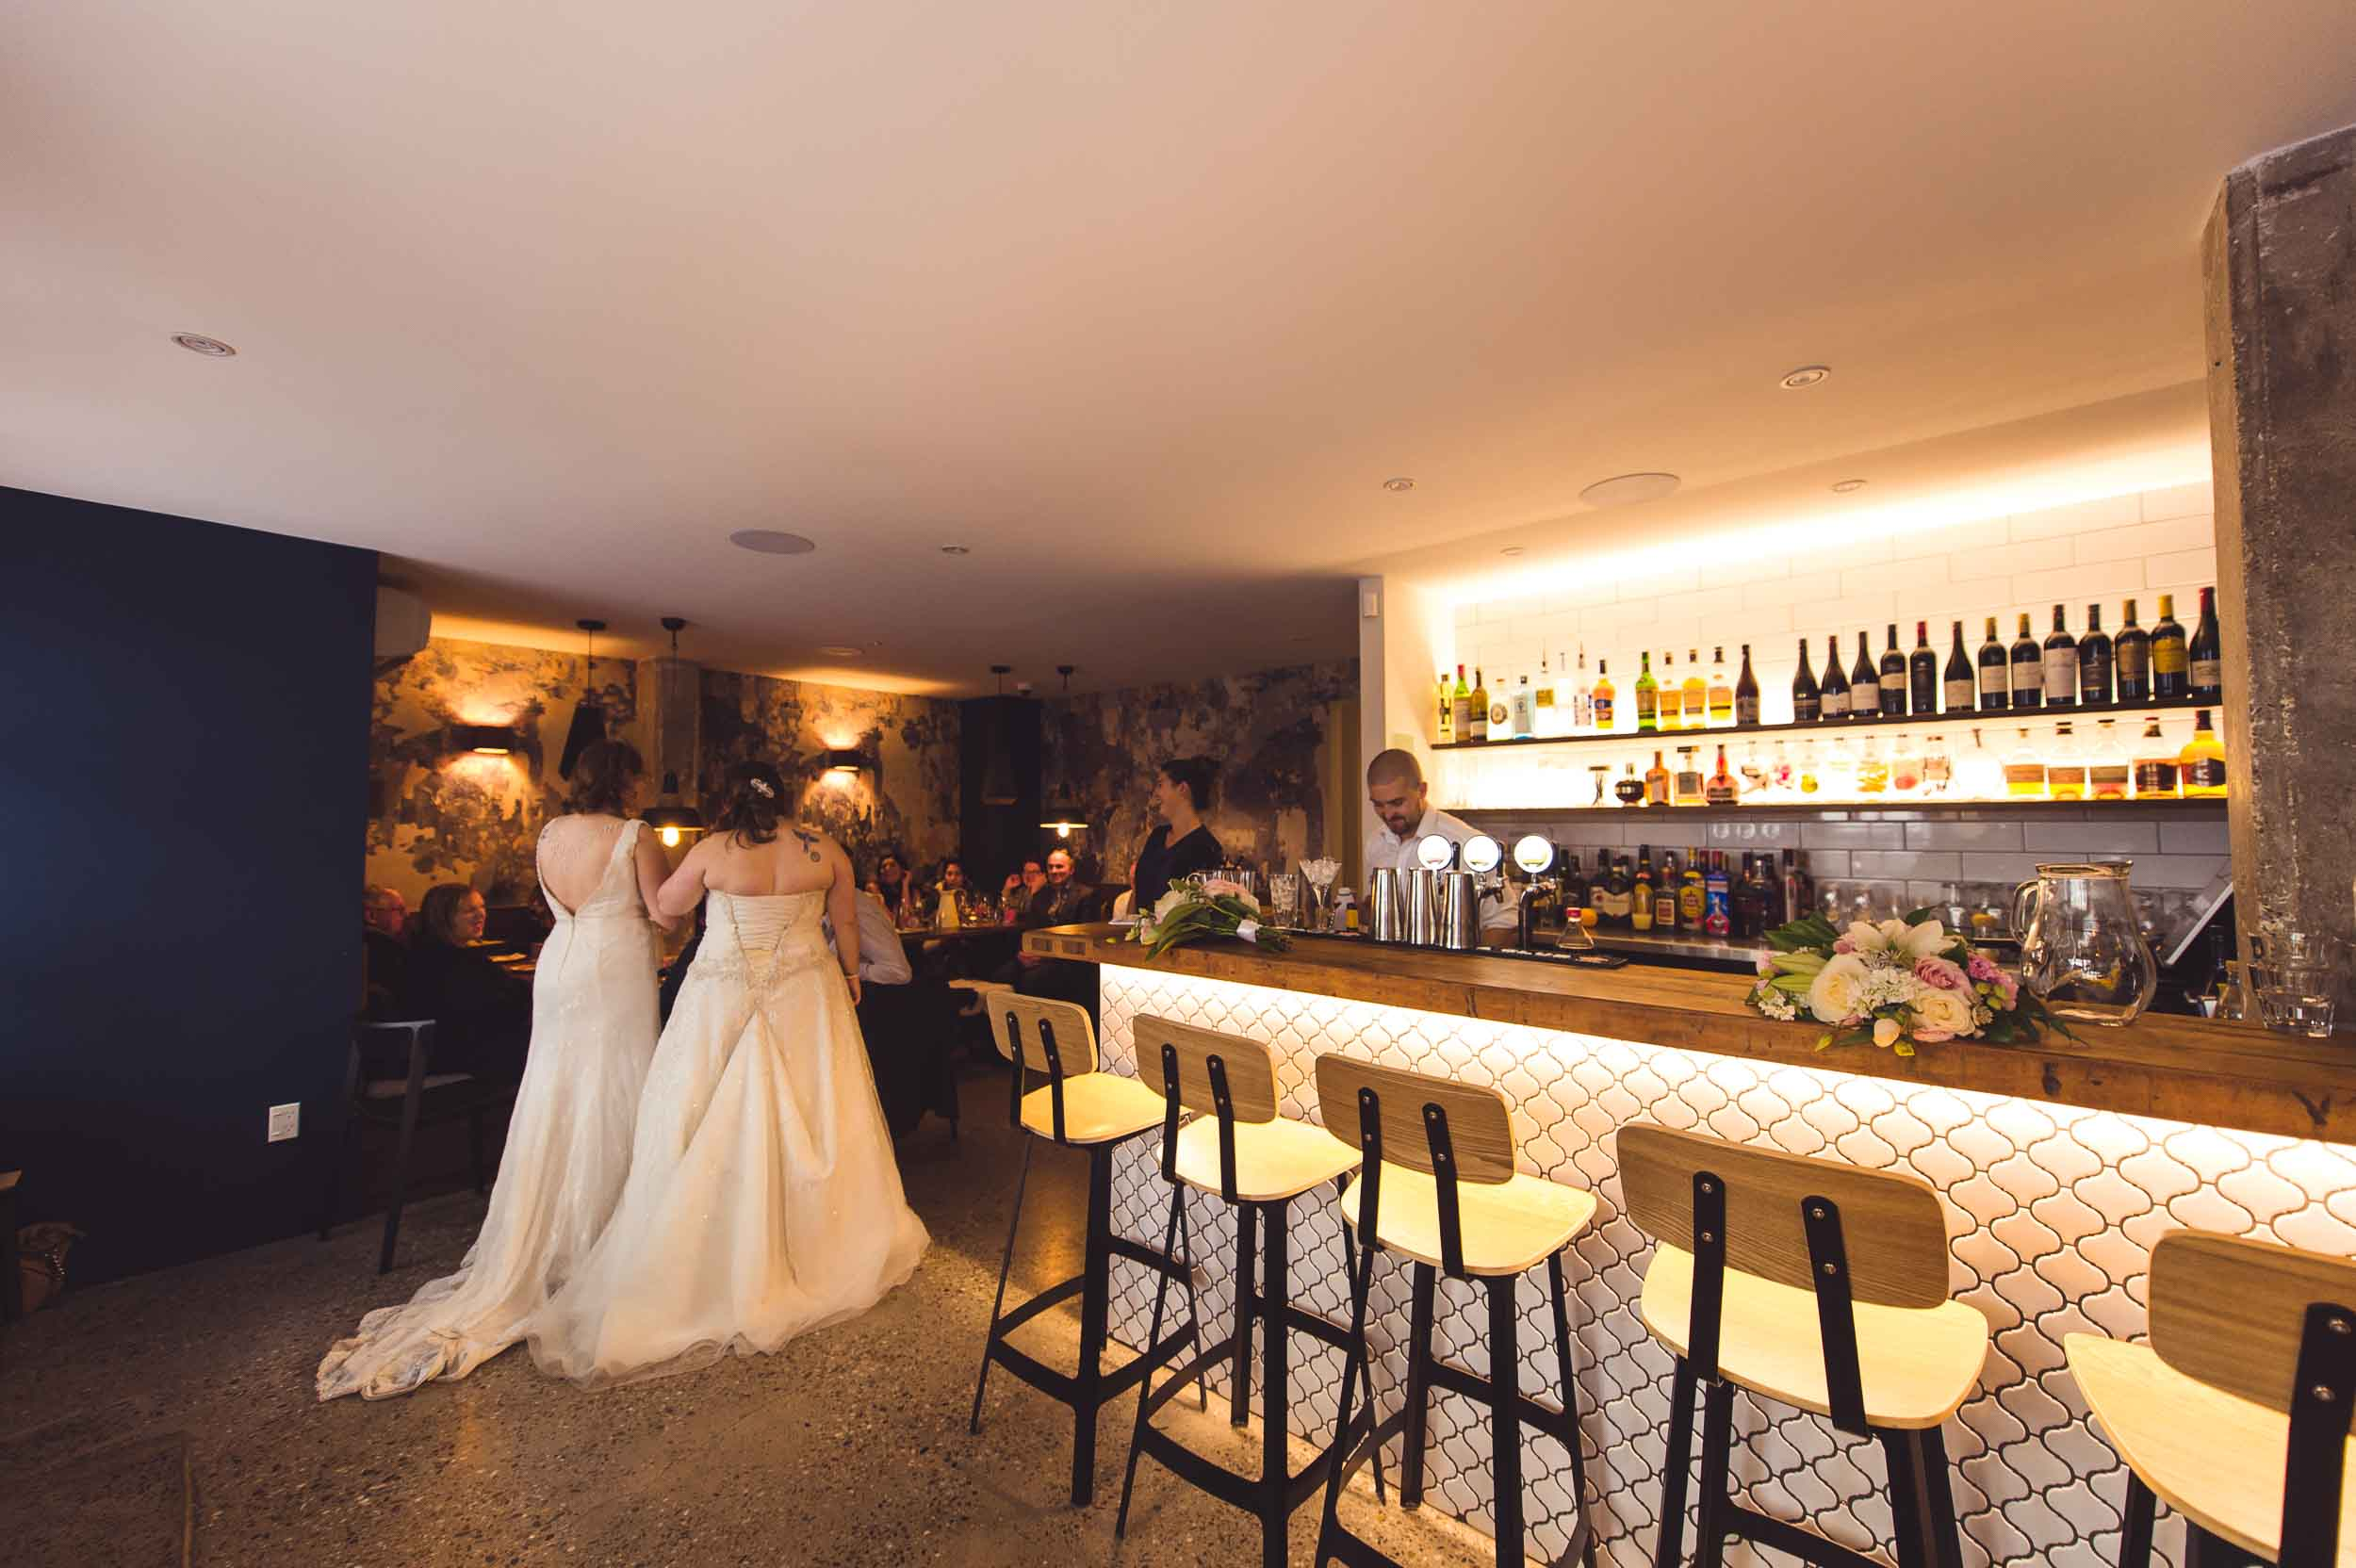 Toro kitchen and bar queenstown wedding reception venue the queenstown wedding blog junglespirit Choice Image